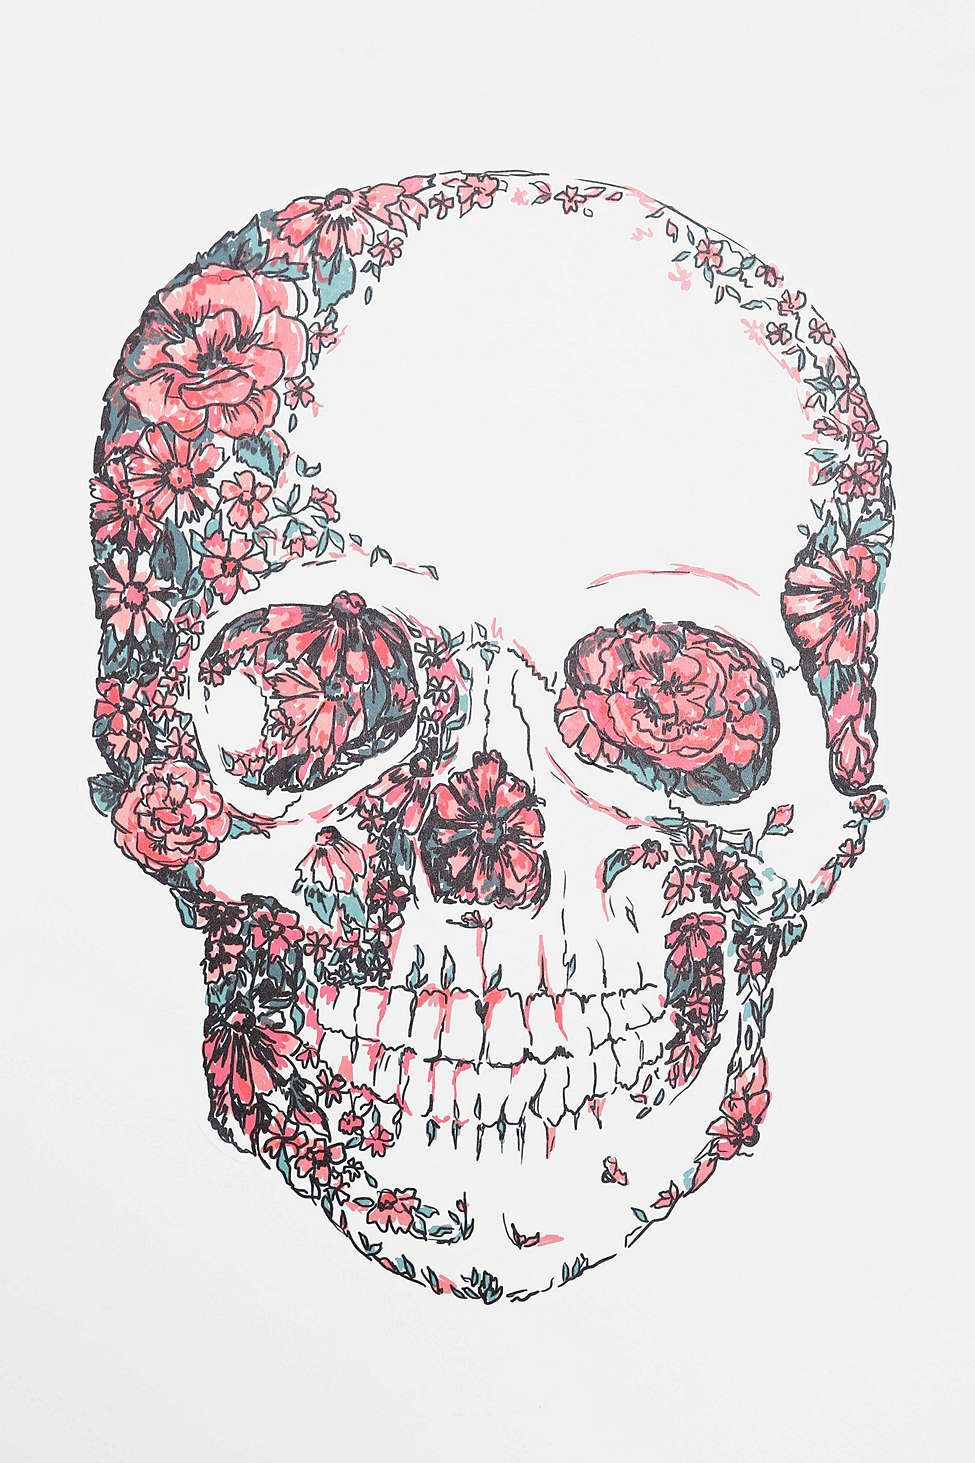 Floral Skull Wall Decal Skull Wallpaper Floral Skull Skull